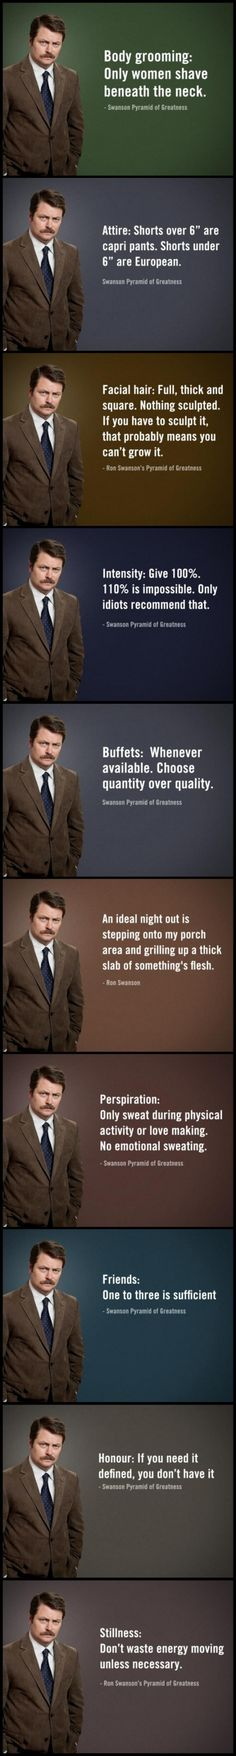 Ron Swanson: Quotes from the Ron Swanson Pyramid of Greatness